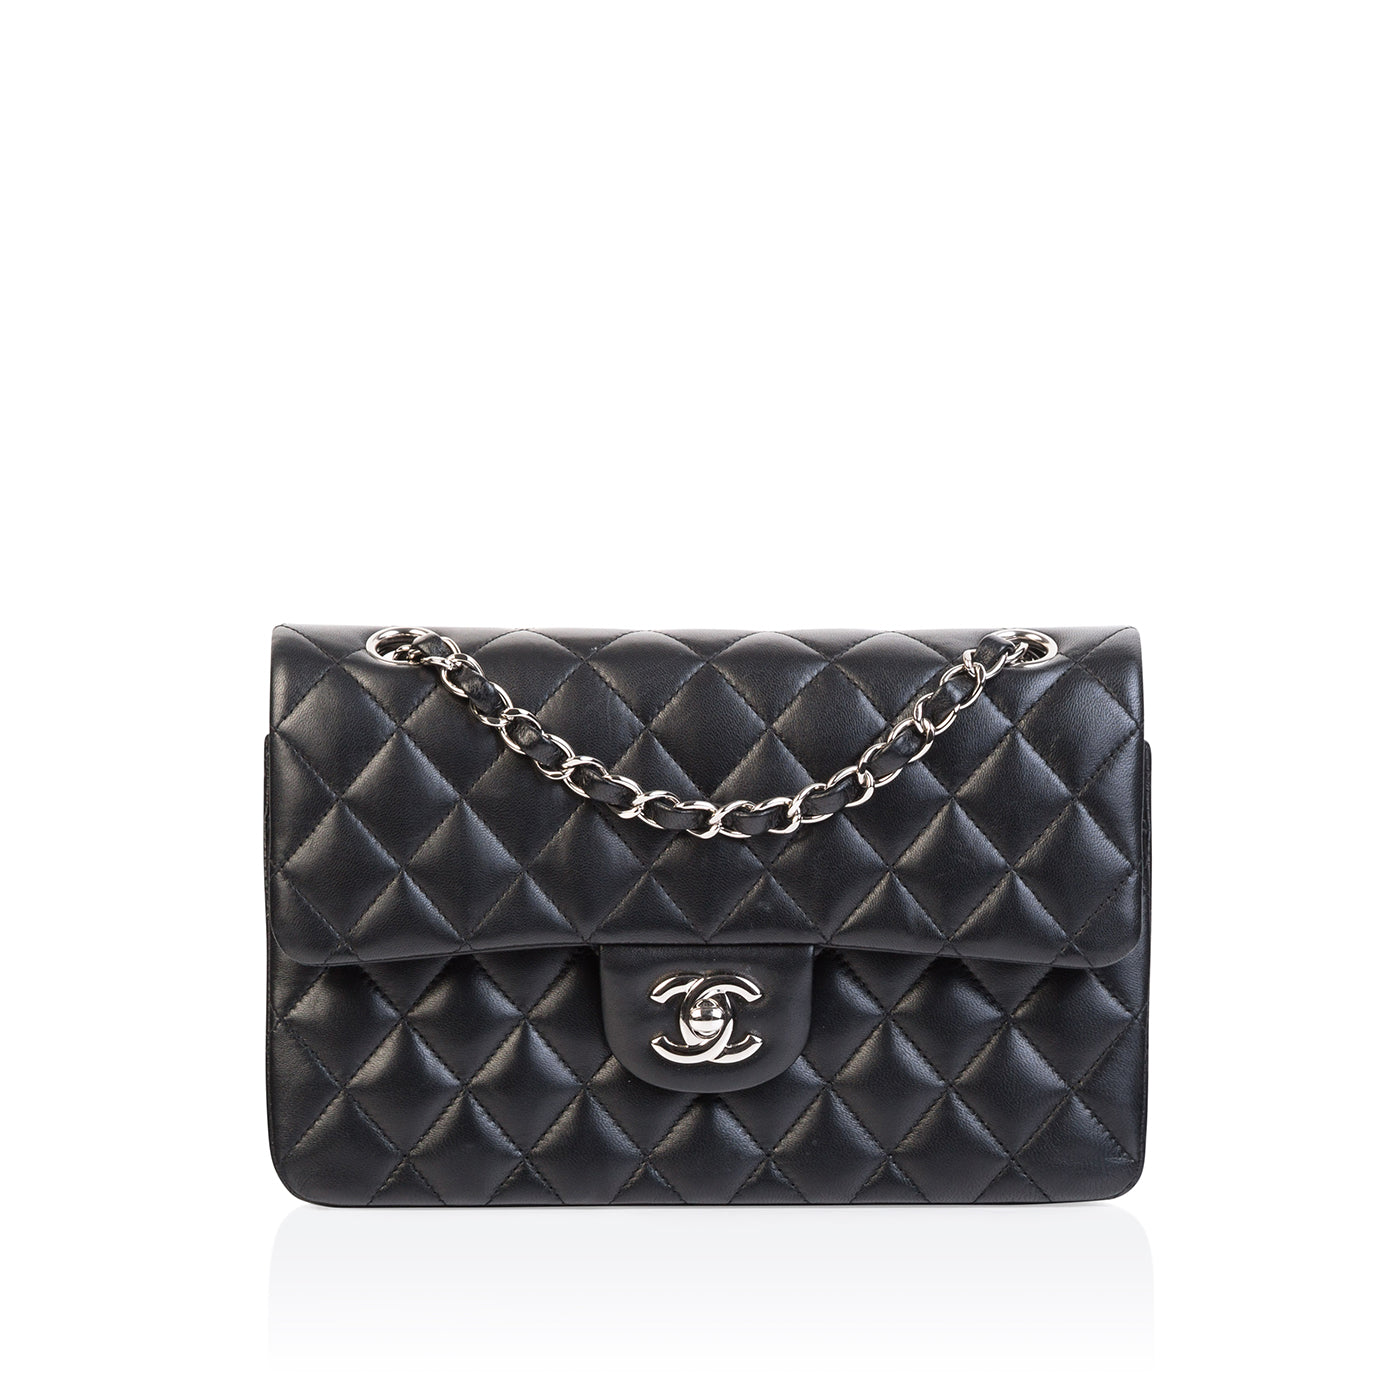 cb39601ce90d03 Chanel - Classic Flap Bag Small - Lambskin - SHW - Pre-Loved | Bagista